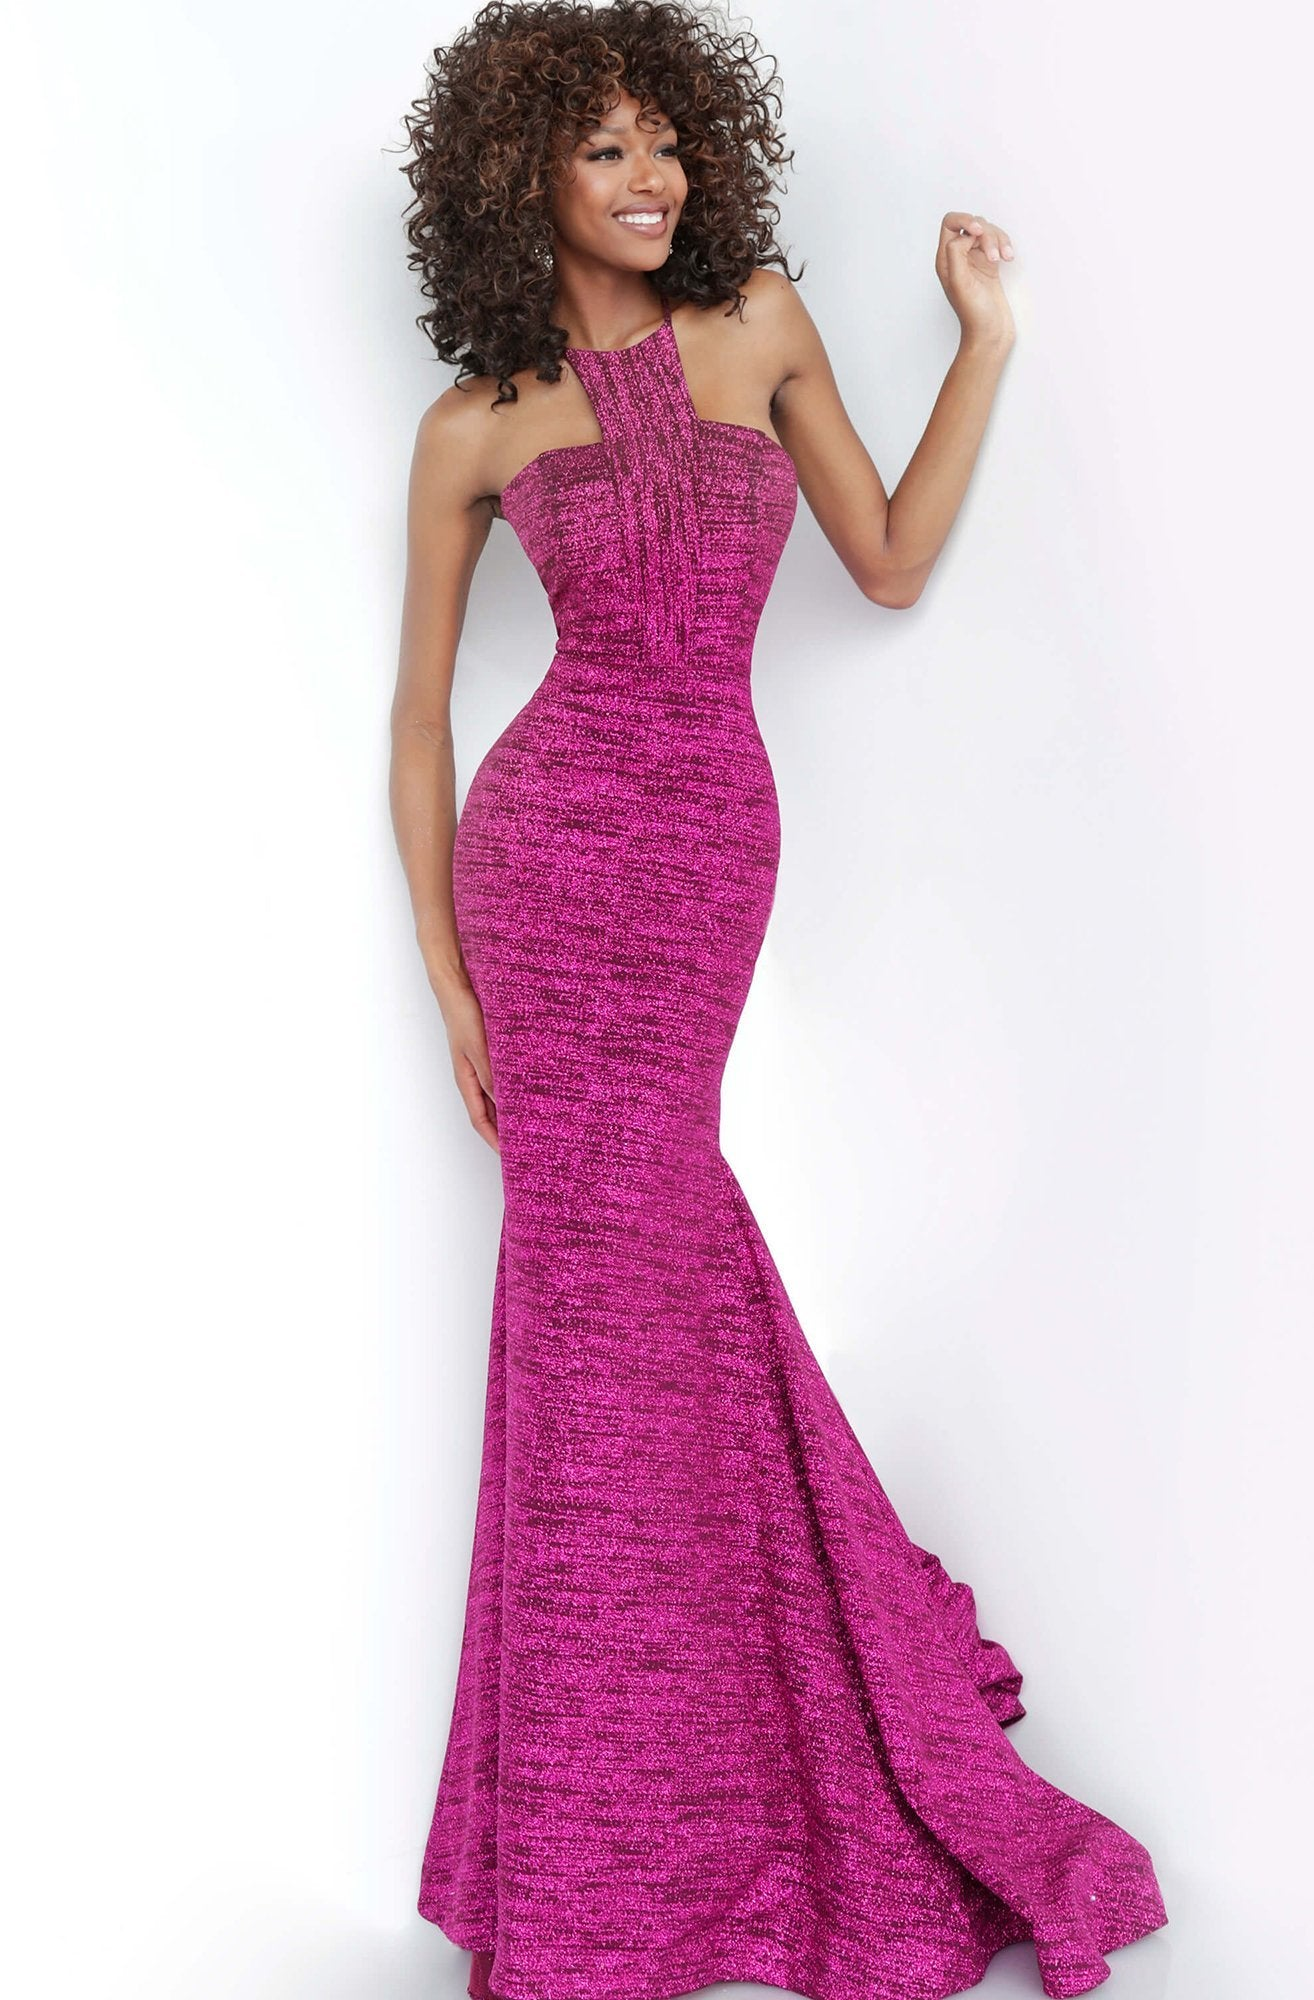 Jovani - 1559 Cut in Shoulders Halter Neck Glitter Knit Prom Dress In Purple and Pink